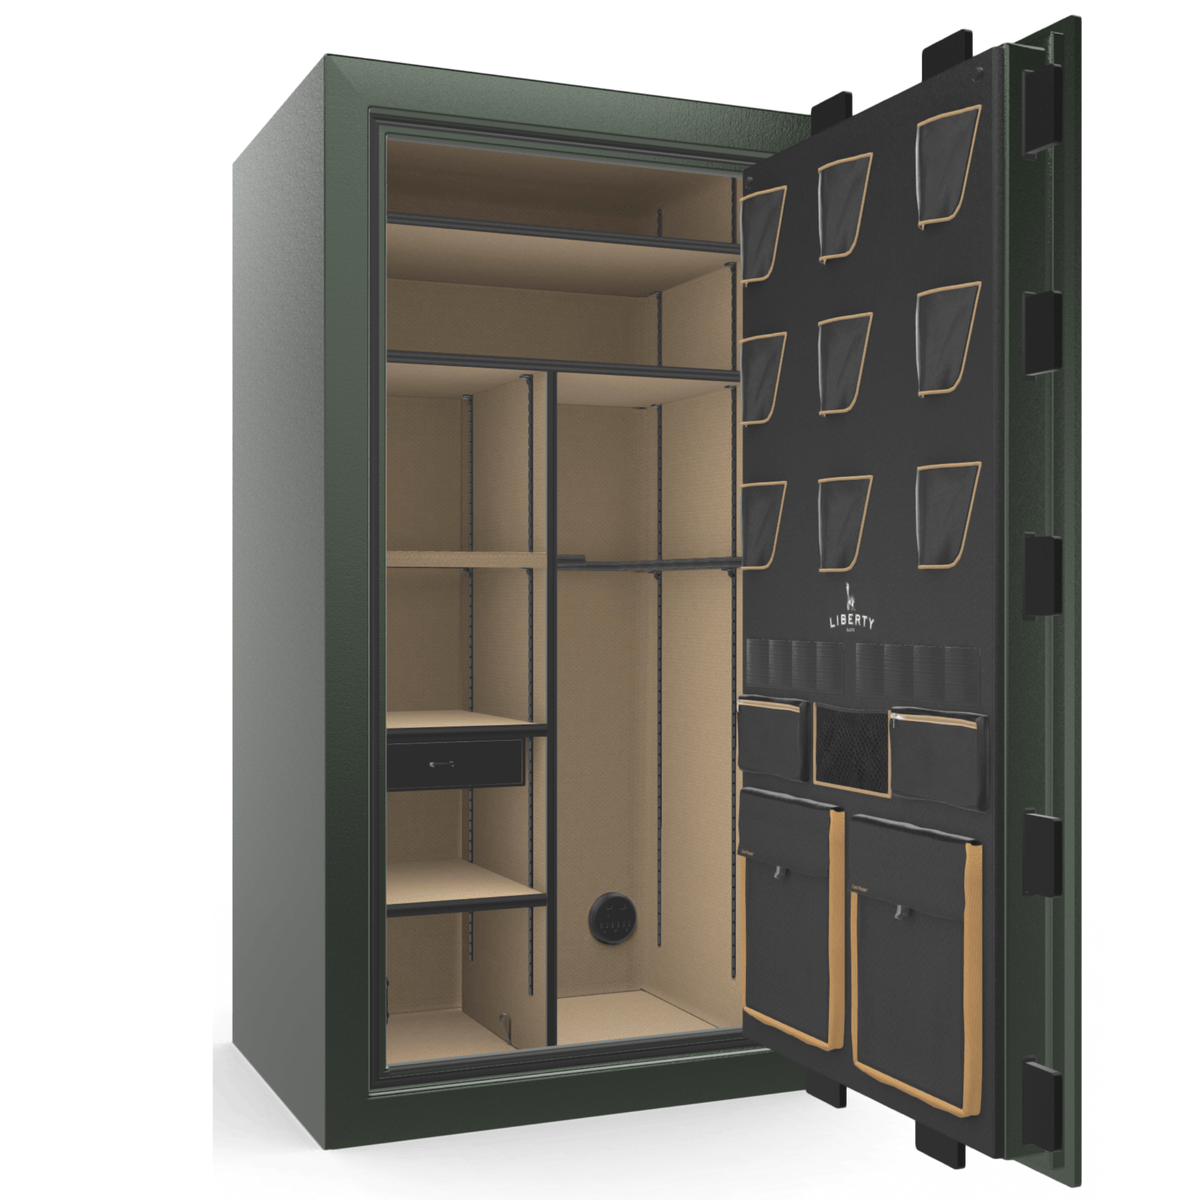 "Classic Plus | 40 | Level 7 Security | 110 Minute Fire Protection | Green | Brass Mechanical Lock | 65.5""(H) x 36""(W) x 32""(D)"